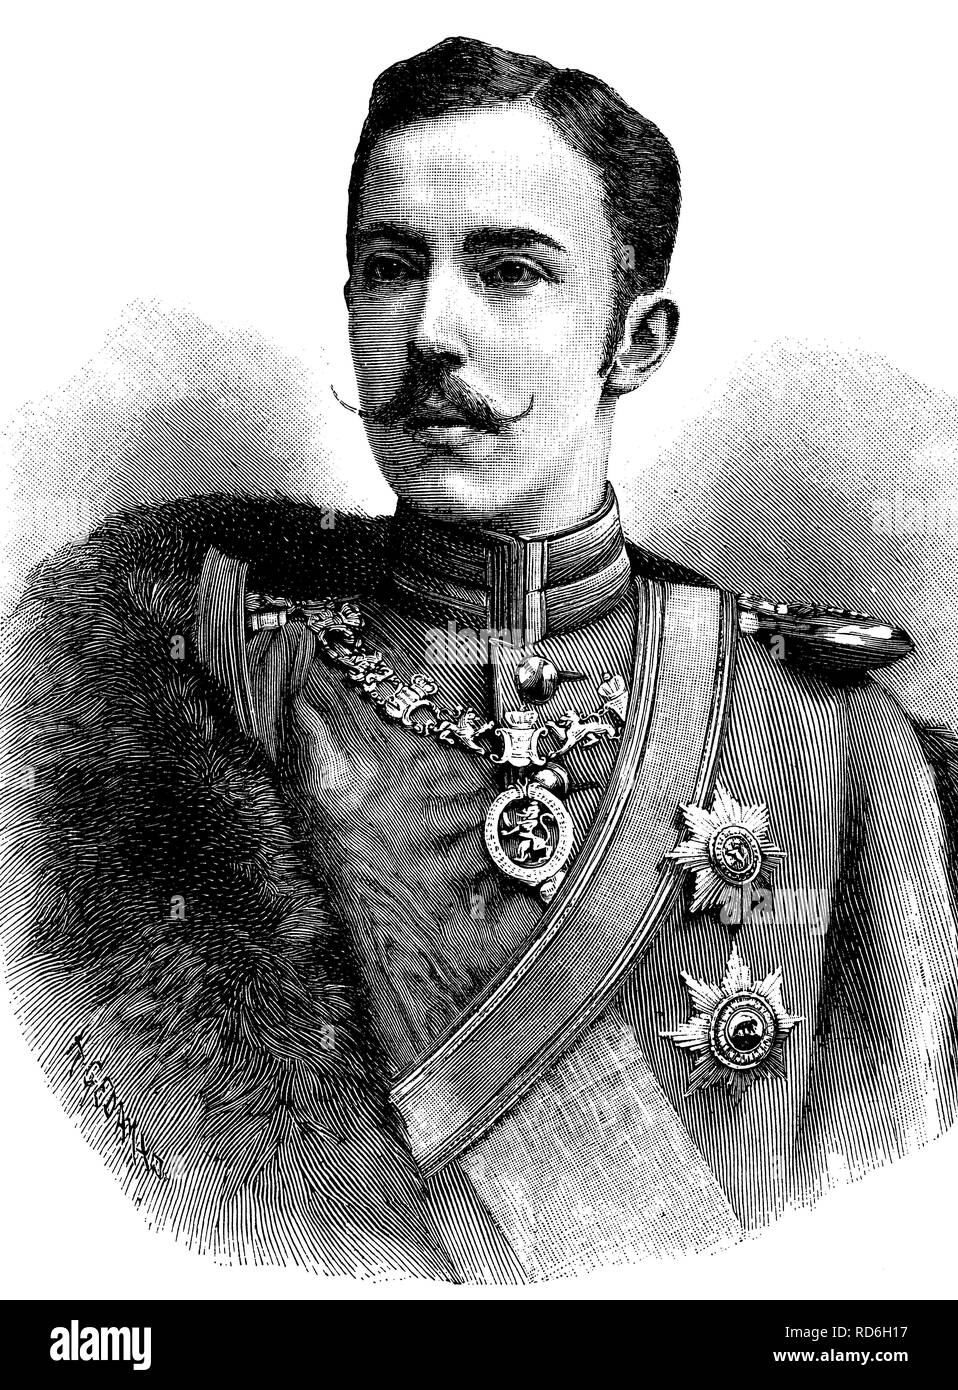 Prince Frederick Charles of Hesse, 1868 - 1940, King of Finland, historical illustration circa 1893 - Stock Image